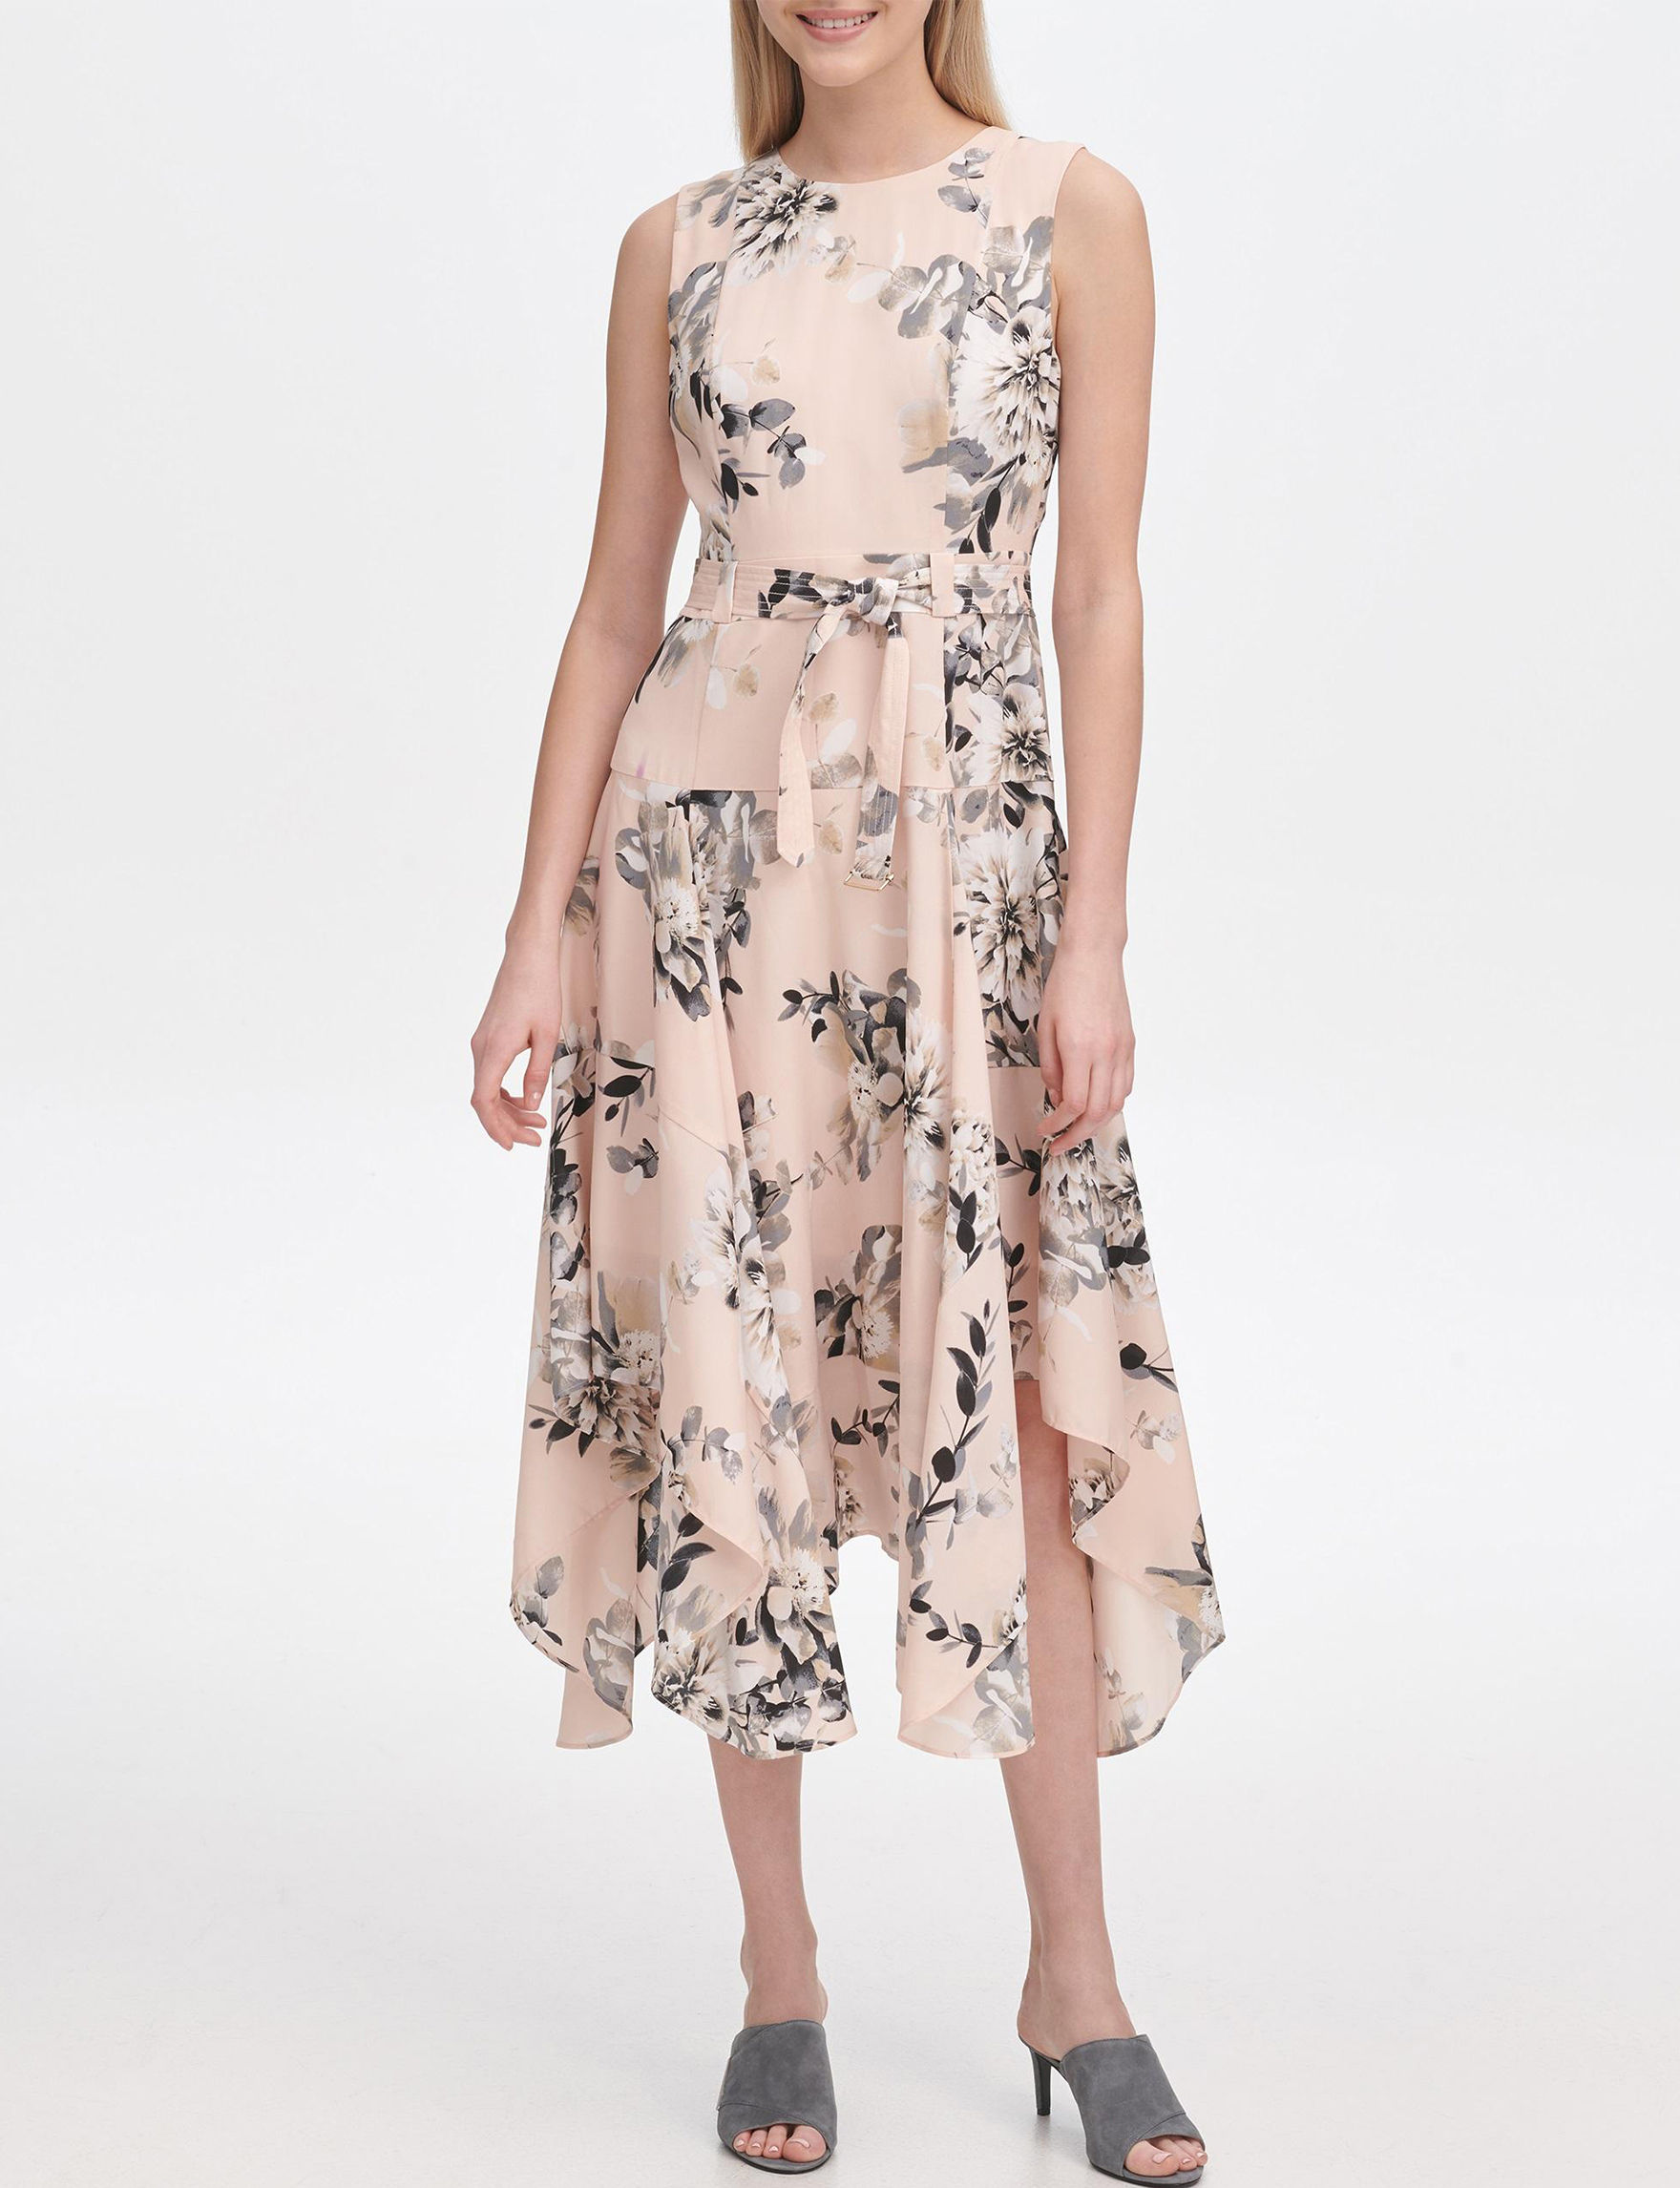 Calvin Klein Rose Everyday & Casual Fit & Flare Dresses